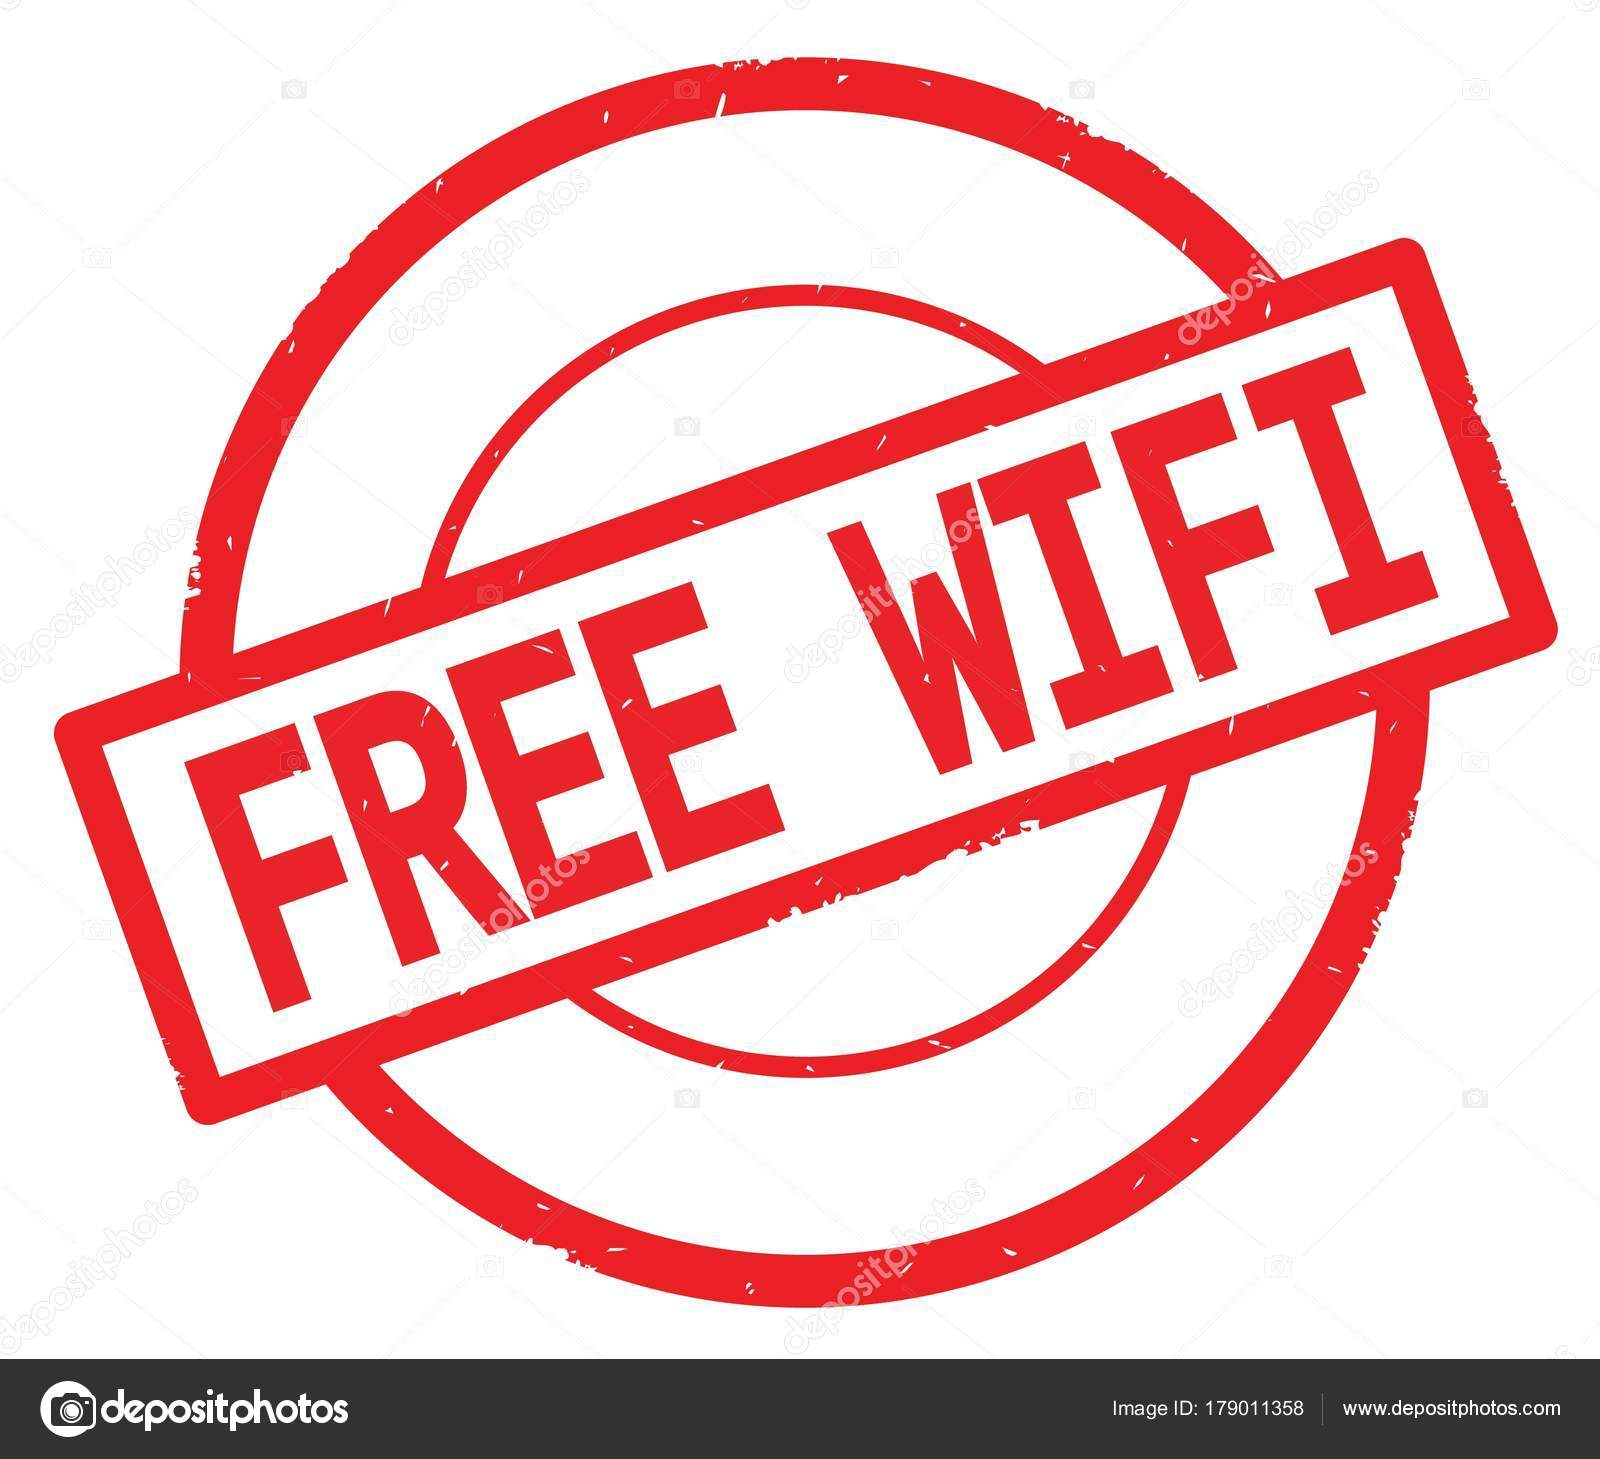 free wifi text written on red simple circle stamp stock photo